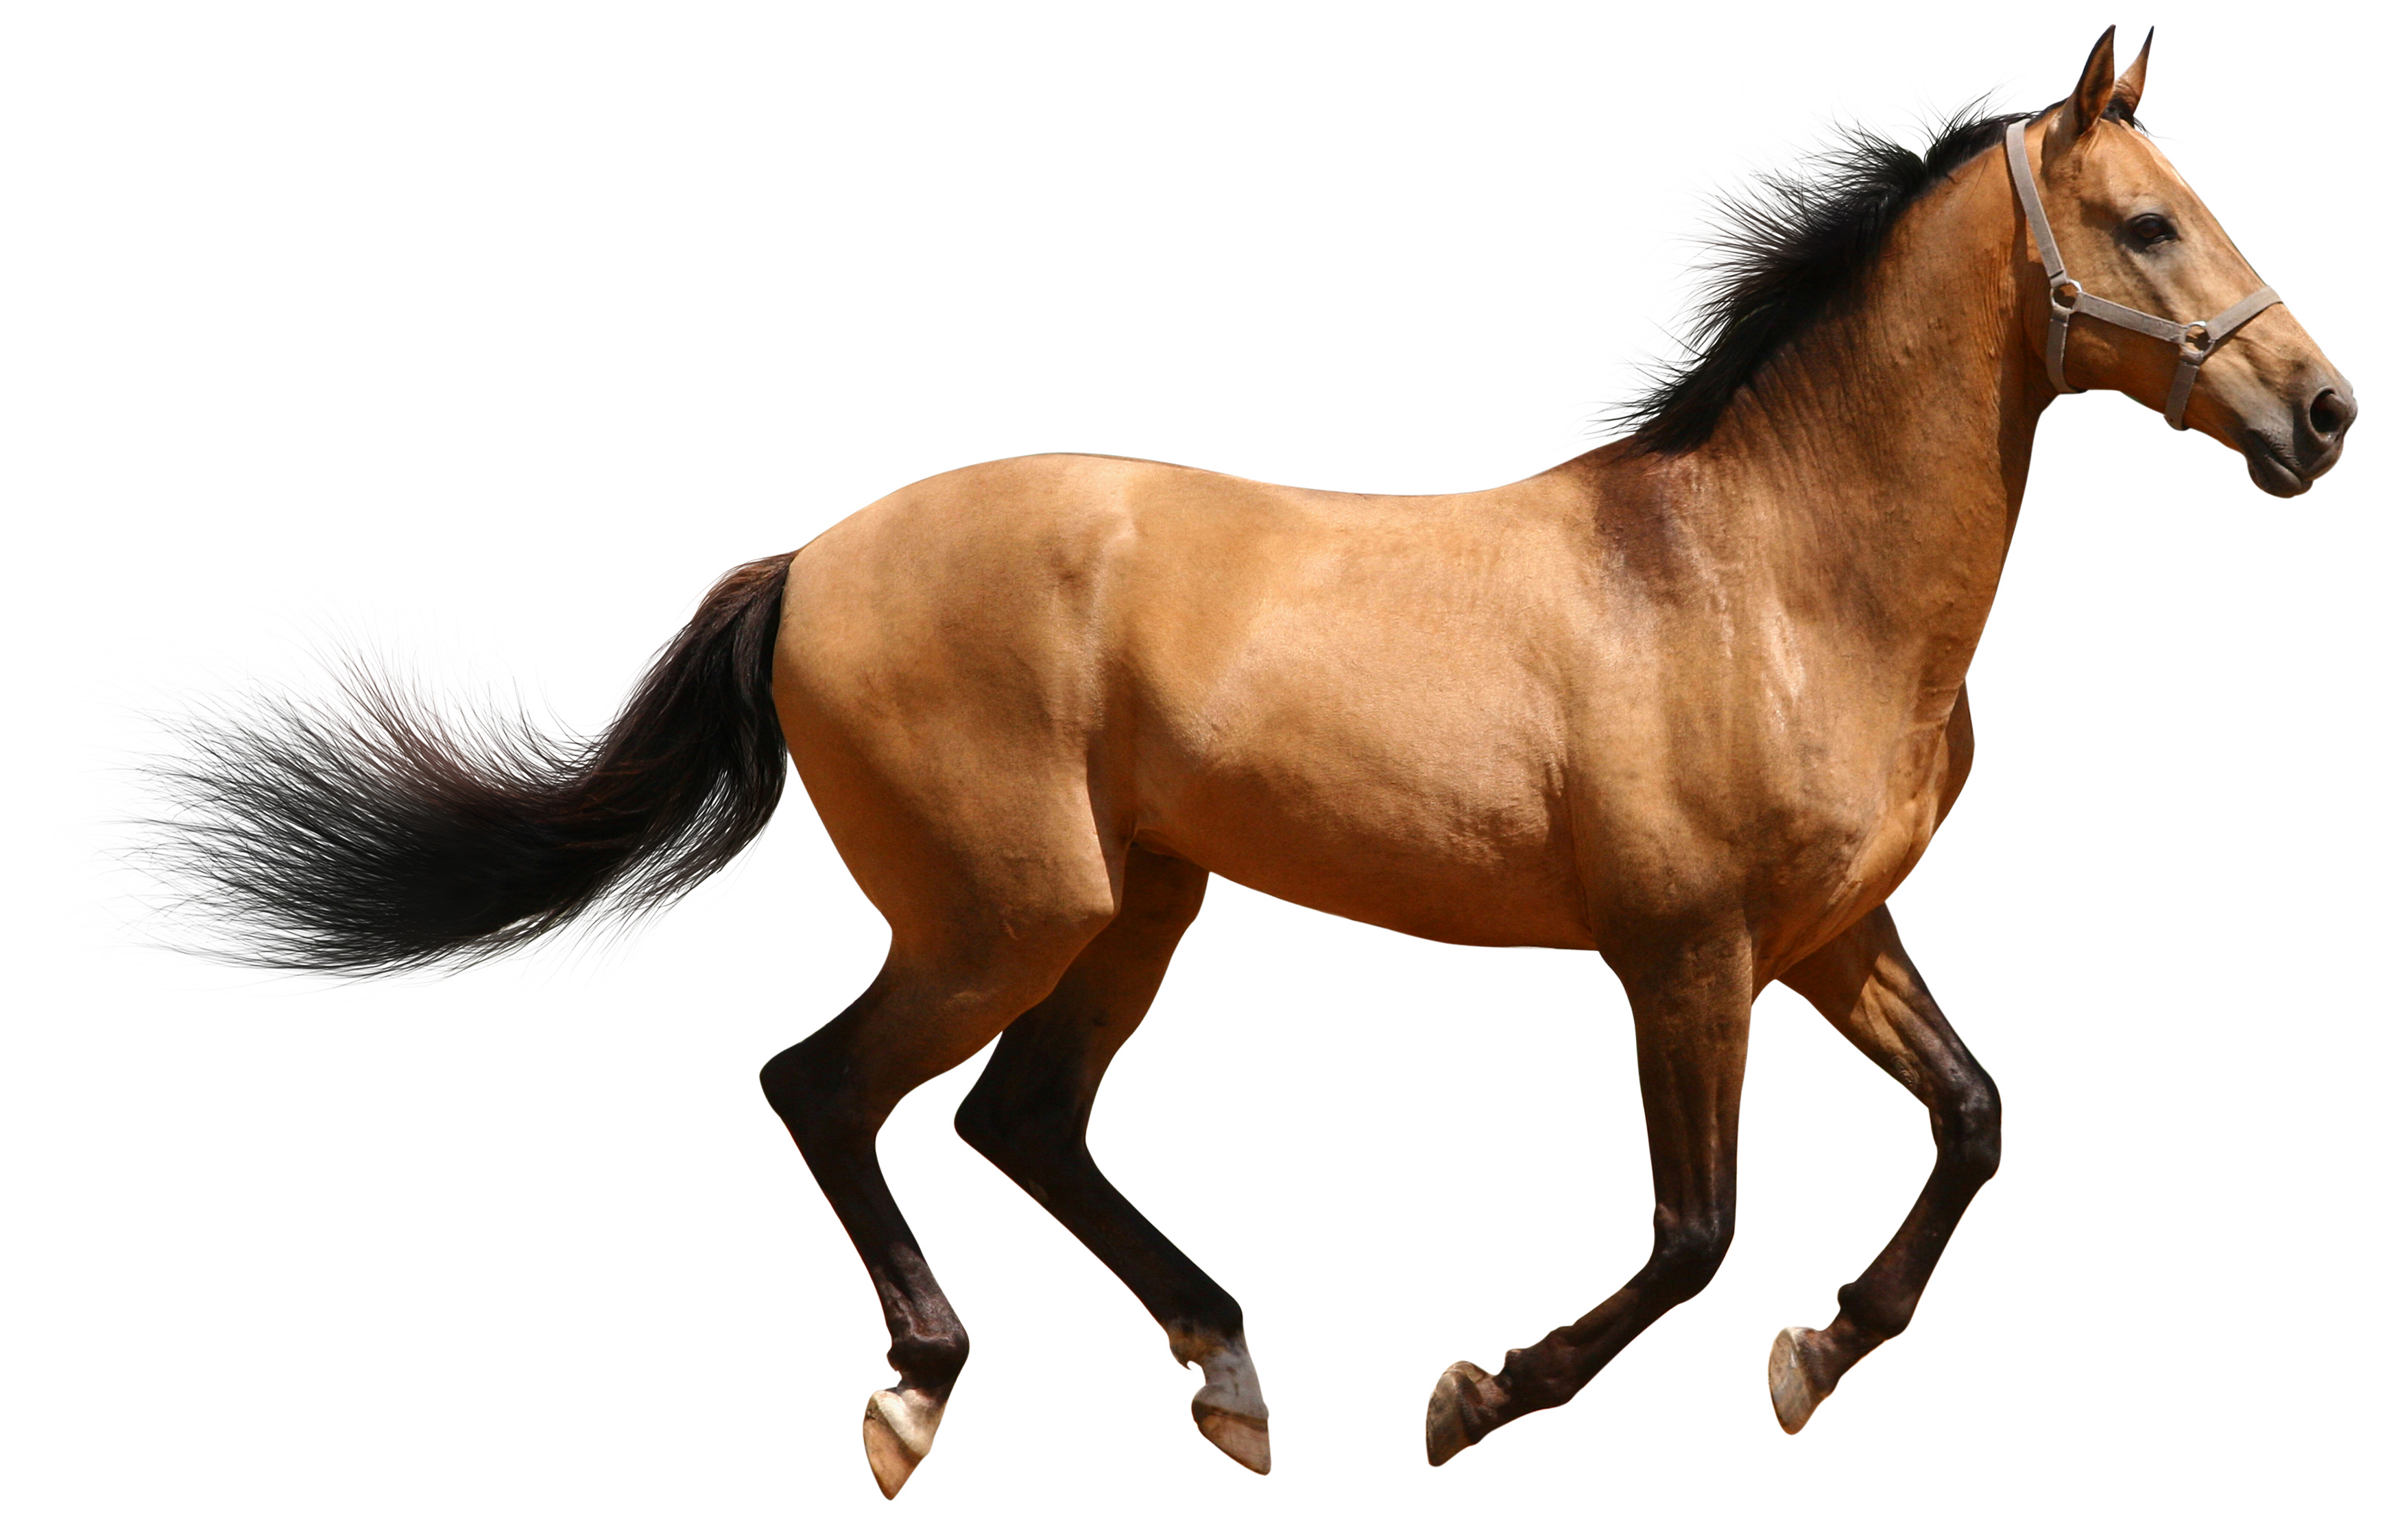 Png Horse Vector Free Download image #22544